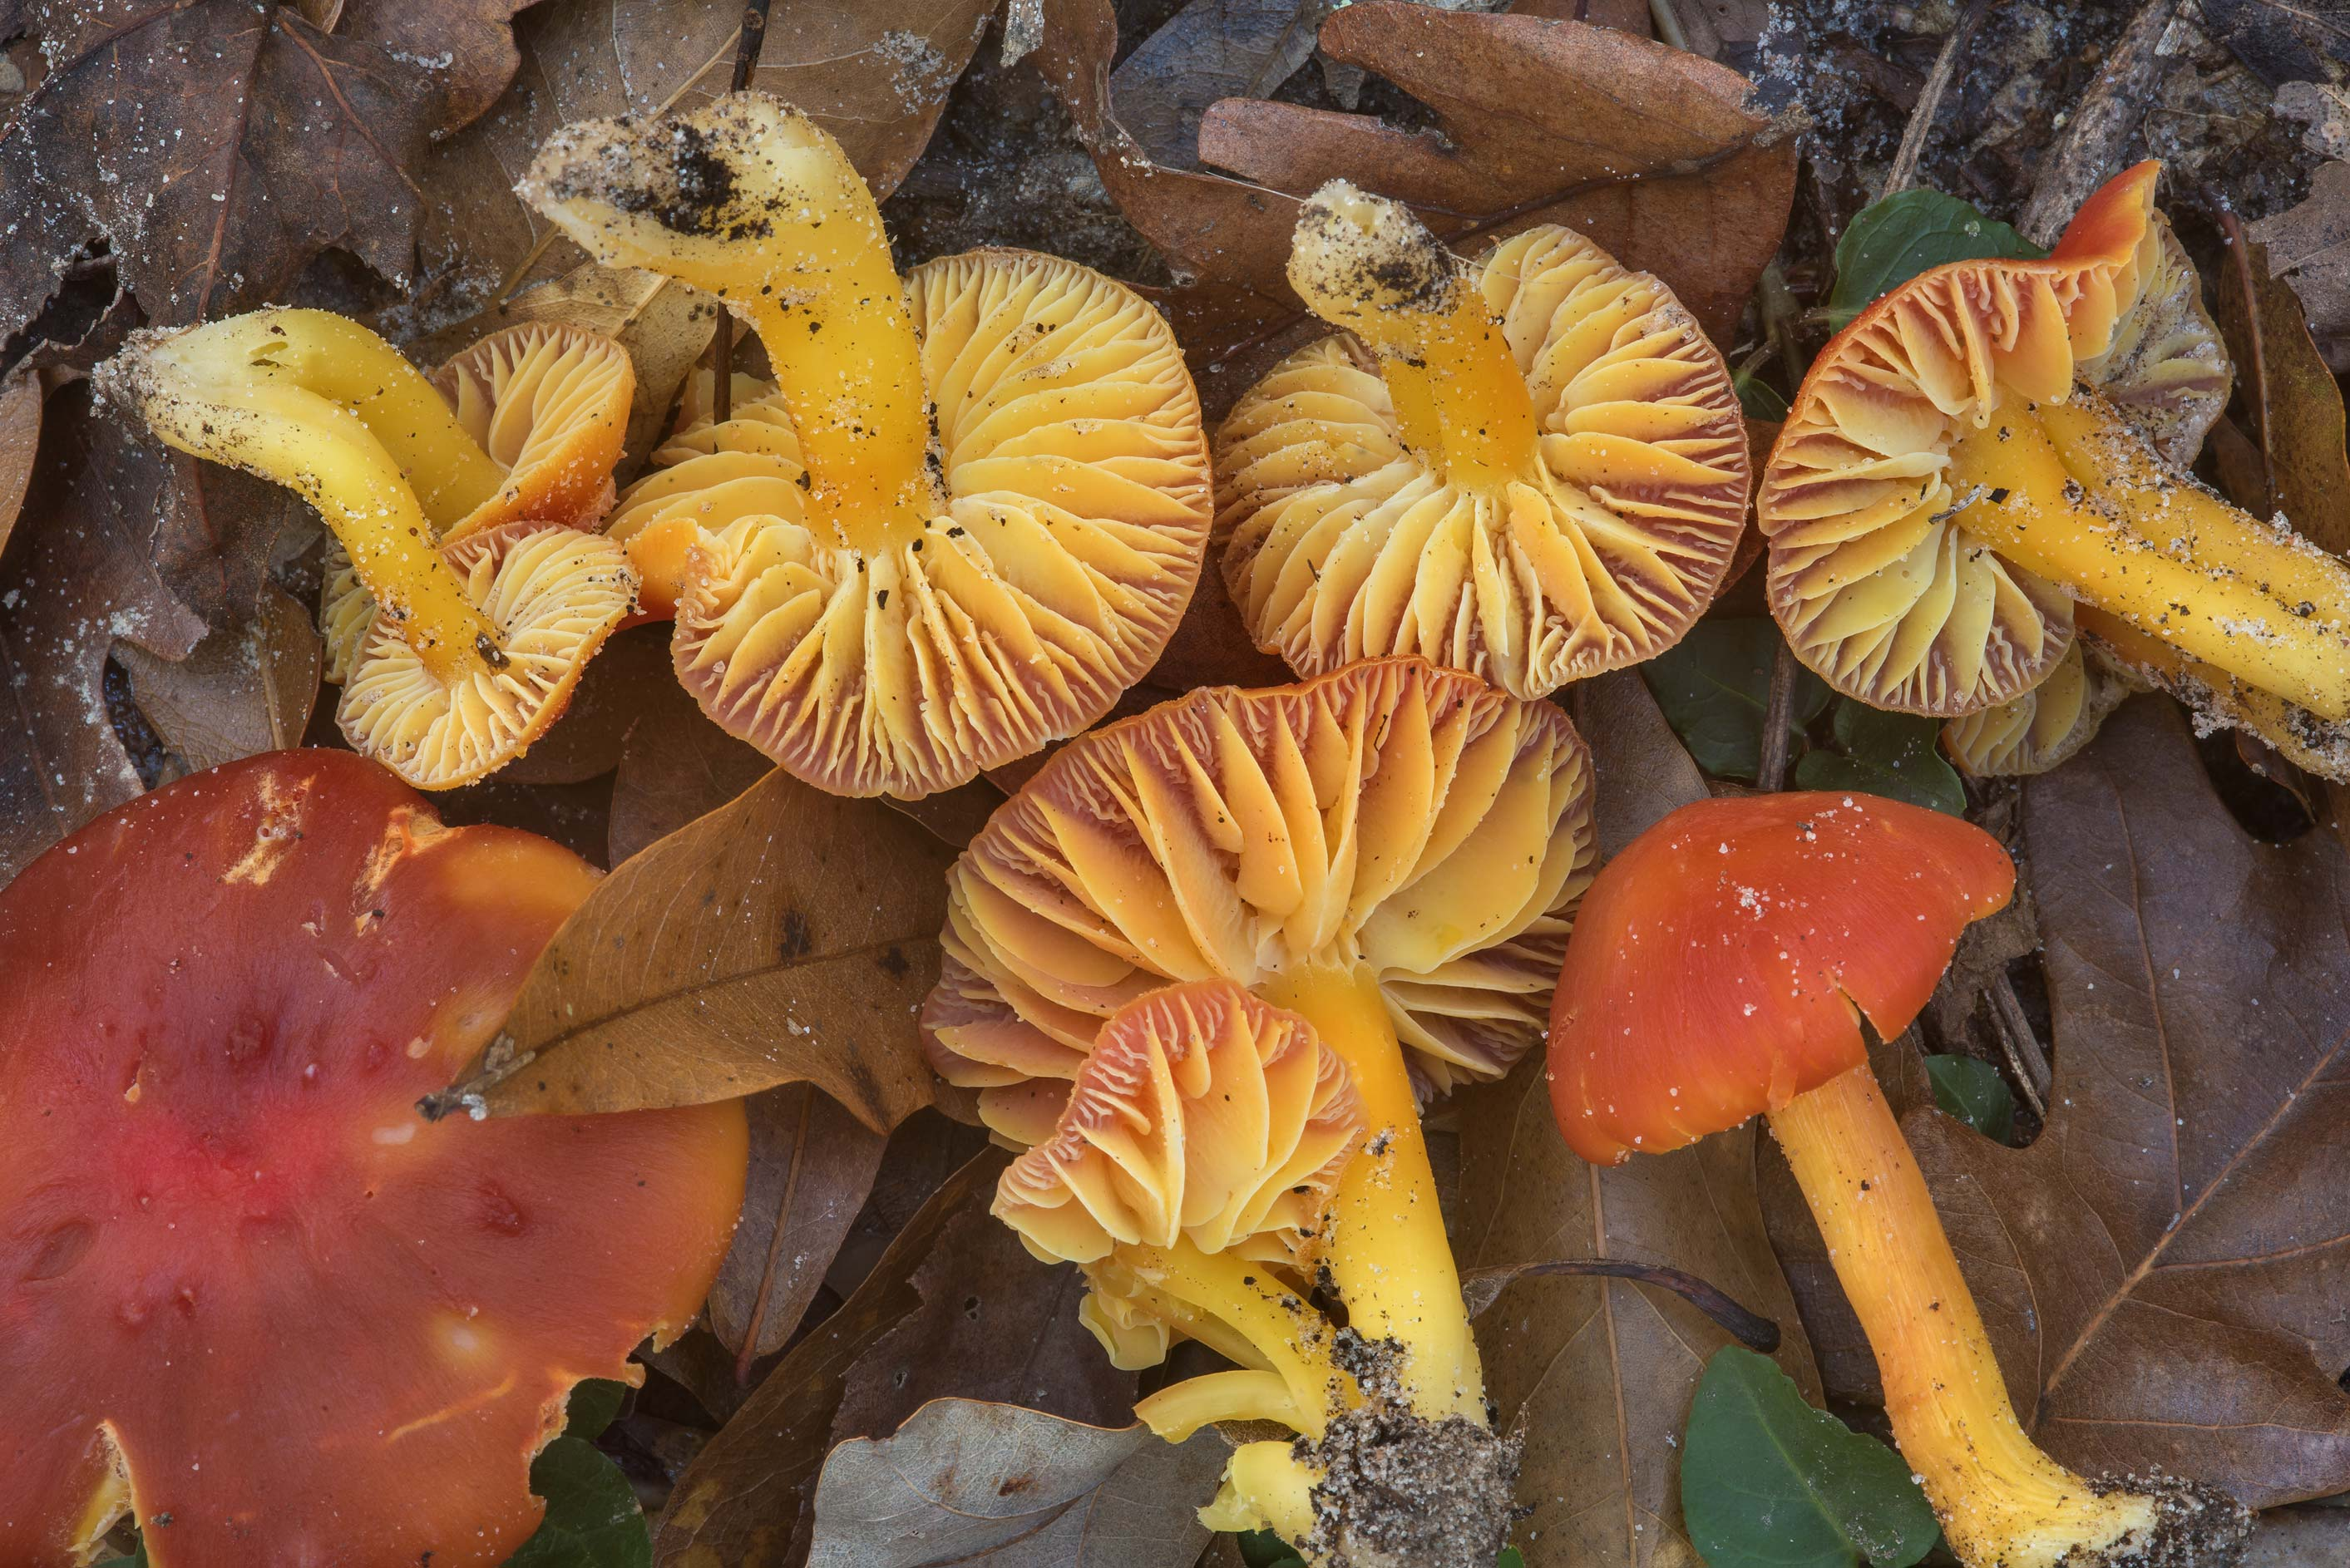 Gills of scarlet waxcap mushrooms (Hygrocybe...National Forest. Shepherd, Texas